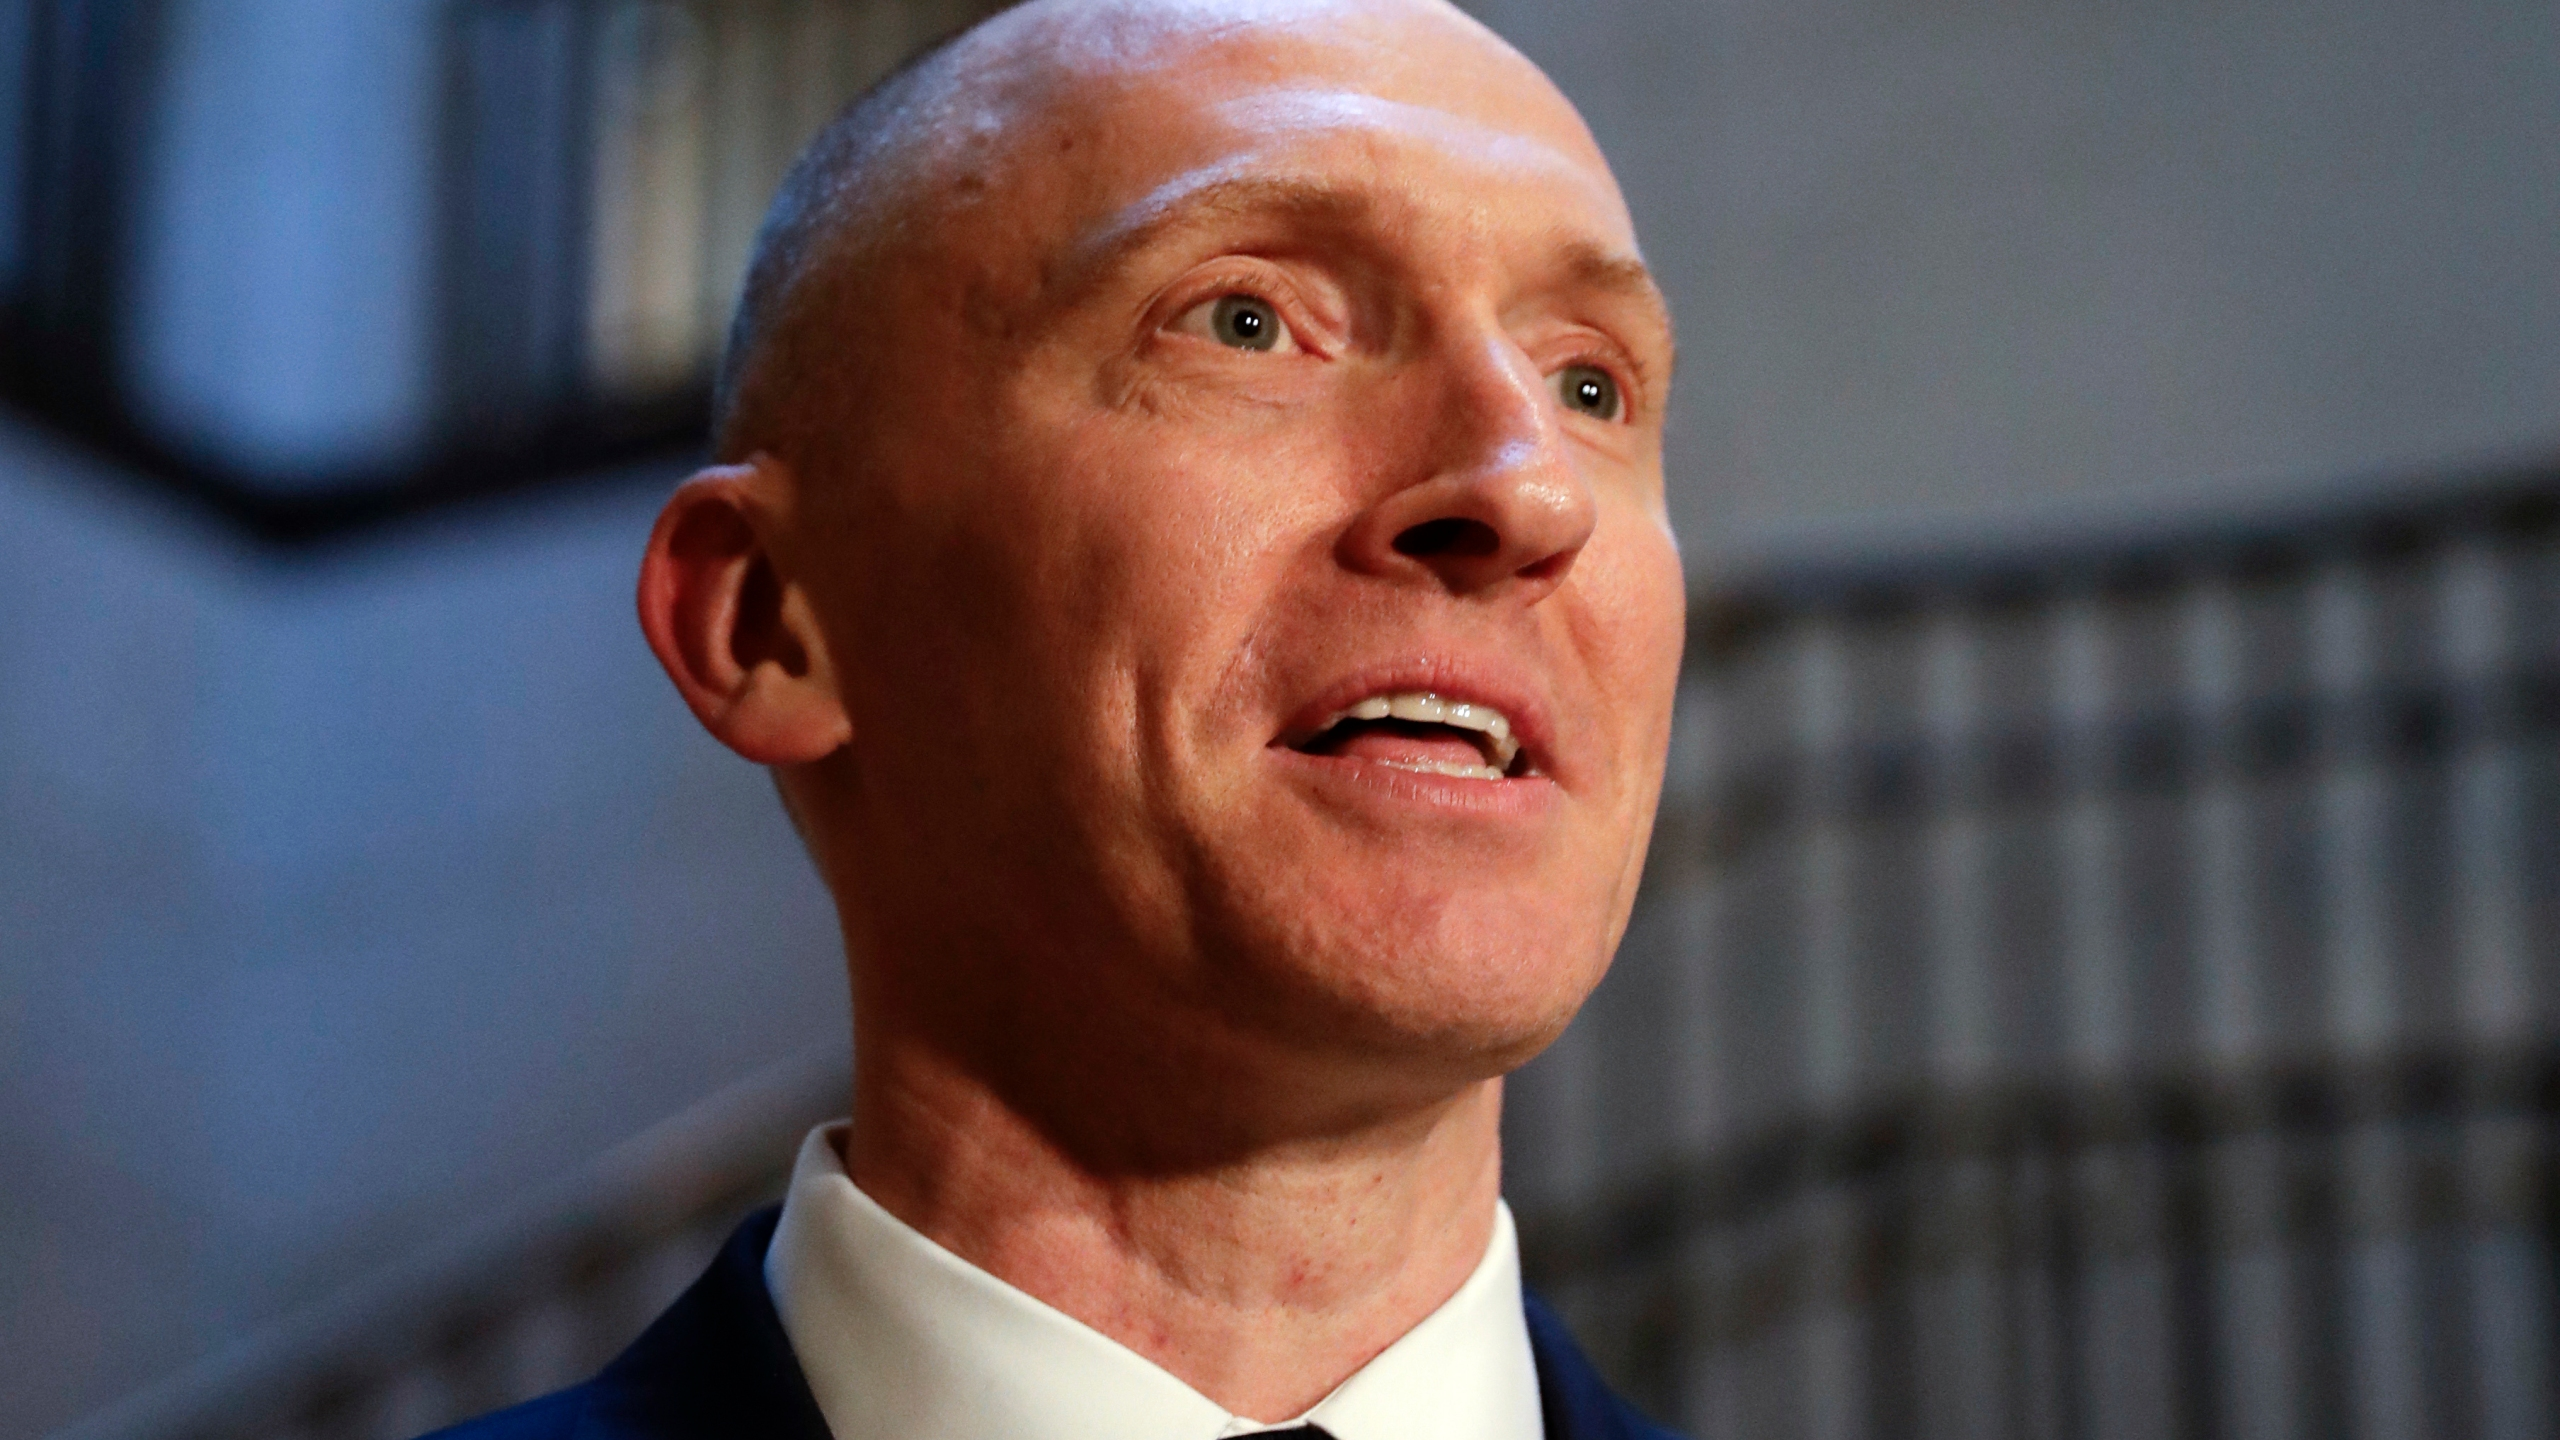 "In this Nov. 2, 2017, photo, Carter Page, a foreign policy adviser to Donald Trump's 2016 presidential campaign, speaks with reporters following a day of questions from the House Intelligence Committee, on Capitol Hill in Washington. Page, who was the target of a secret surveillance warrant during the FBI's Russia investigation says in a federal lawsuit filed Friday, Nov. 27, 2020, that he was the victim of ""unlawful spying."" The suit from Carter Page alleges a series of omissions and errors made by FBI and Justice Department officials in applications they submitted to the Foreign Intelligence Surveillance Court to eavesdrop on Page on suspicion that he was an agent of Russia. (AP Photo/J. Scott Applewhite)"